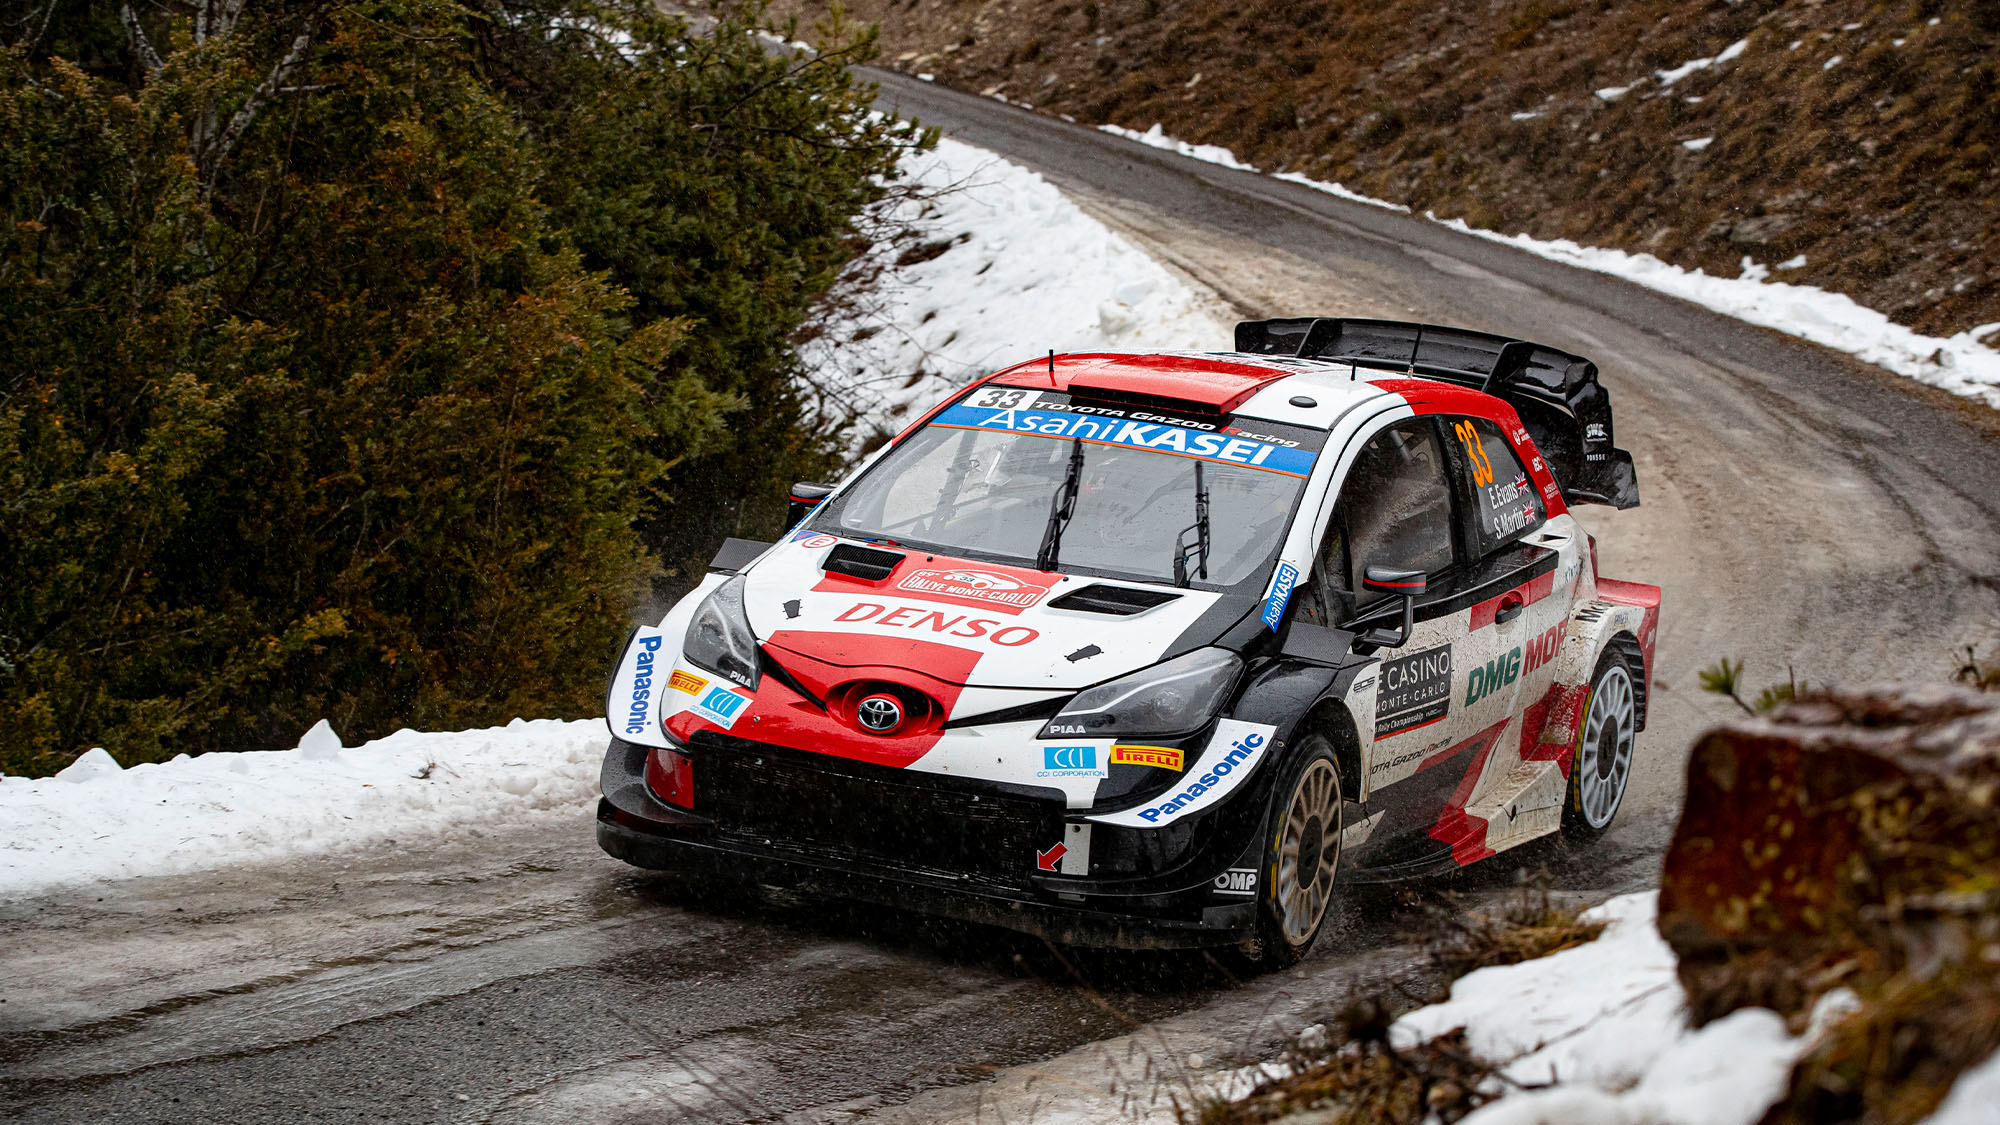 2021 Monte Carlo Rally: Evans leads after dramatic 2nd day